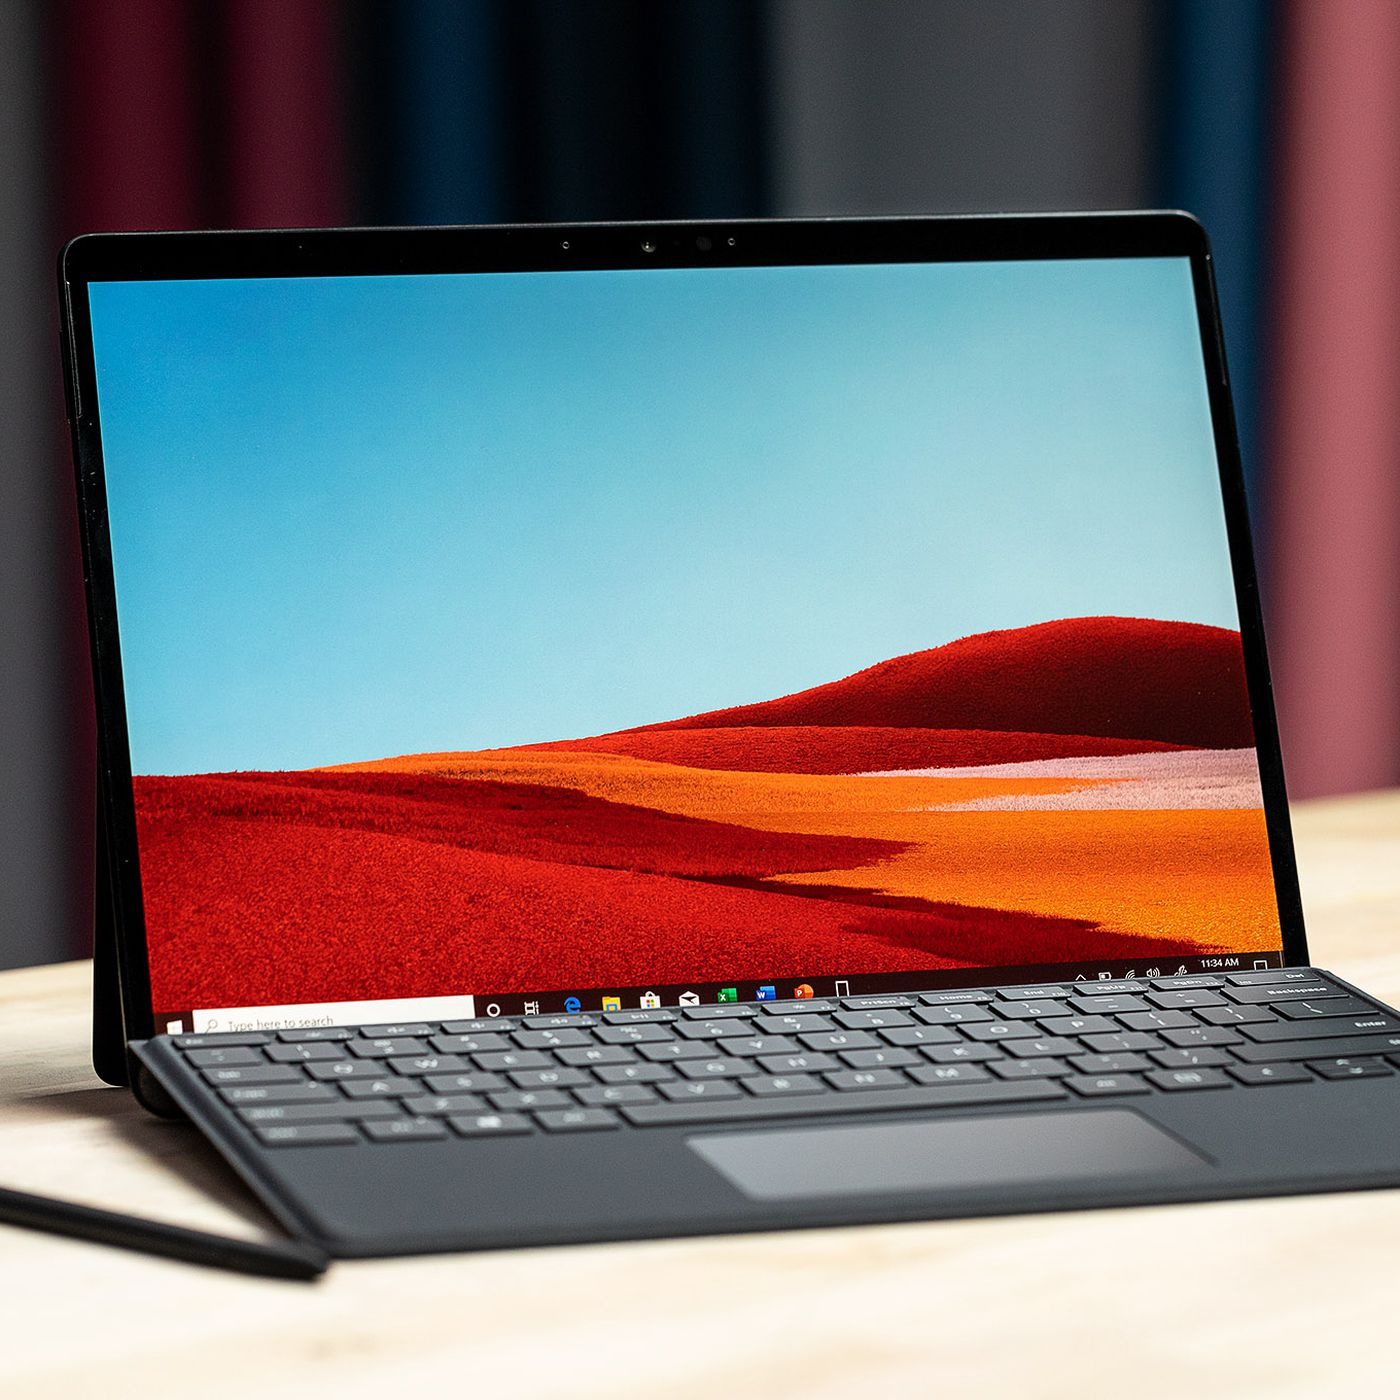 Microsoft Reportedly Launching Surface Pro X 2 In Fall With New Chip And Color Variant The Verge